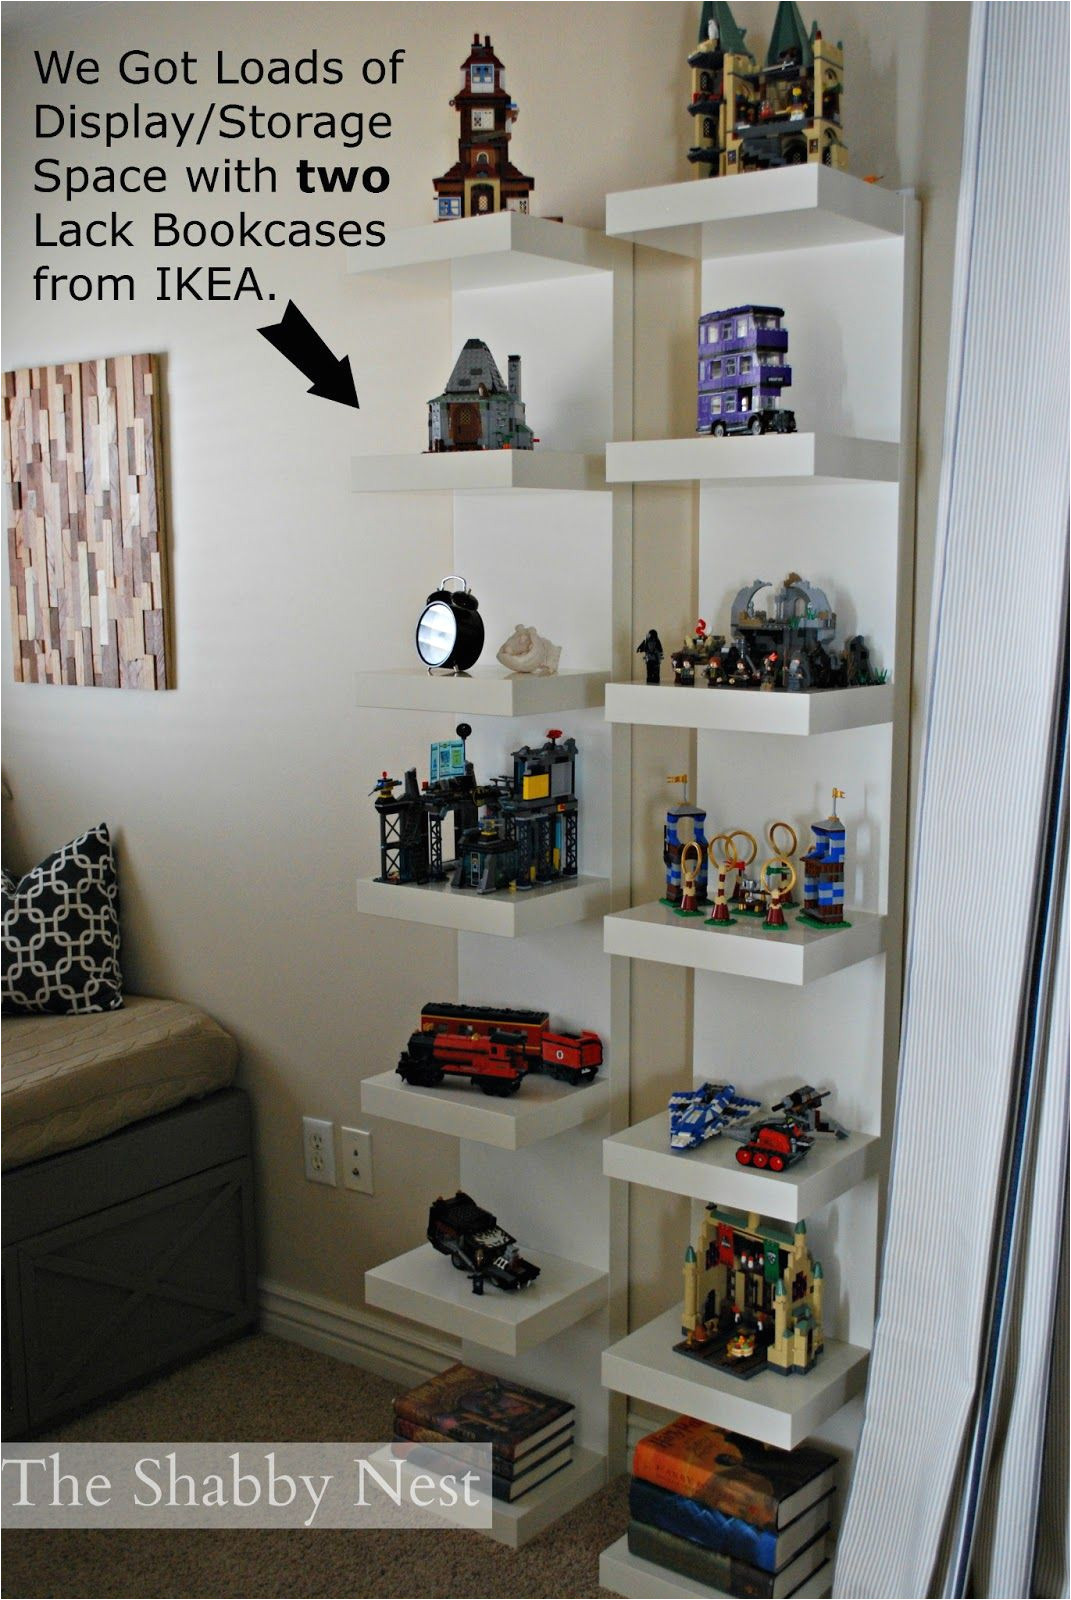 Lego Display Case Ikea Display Lego Collection We Used Lack Bookcases Ikea to Display